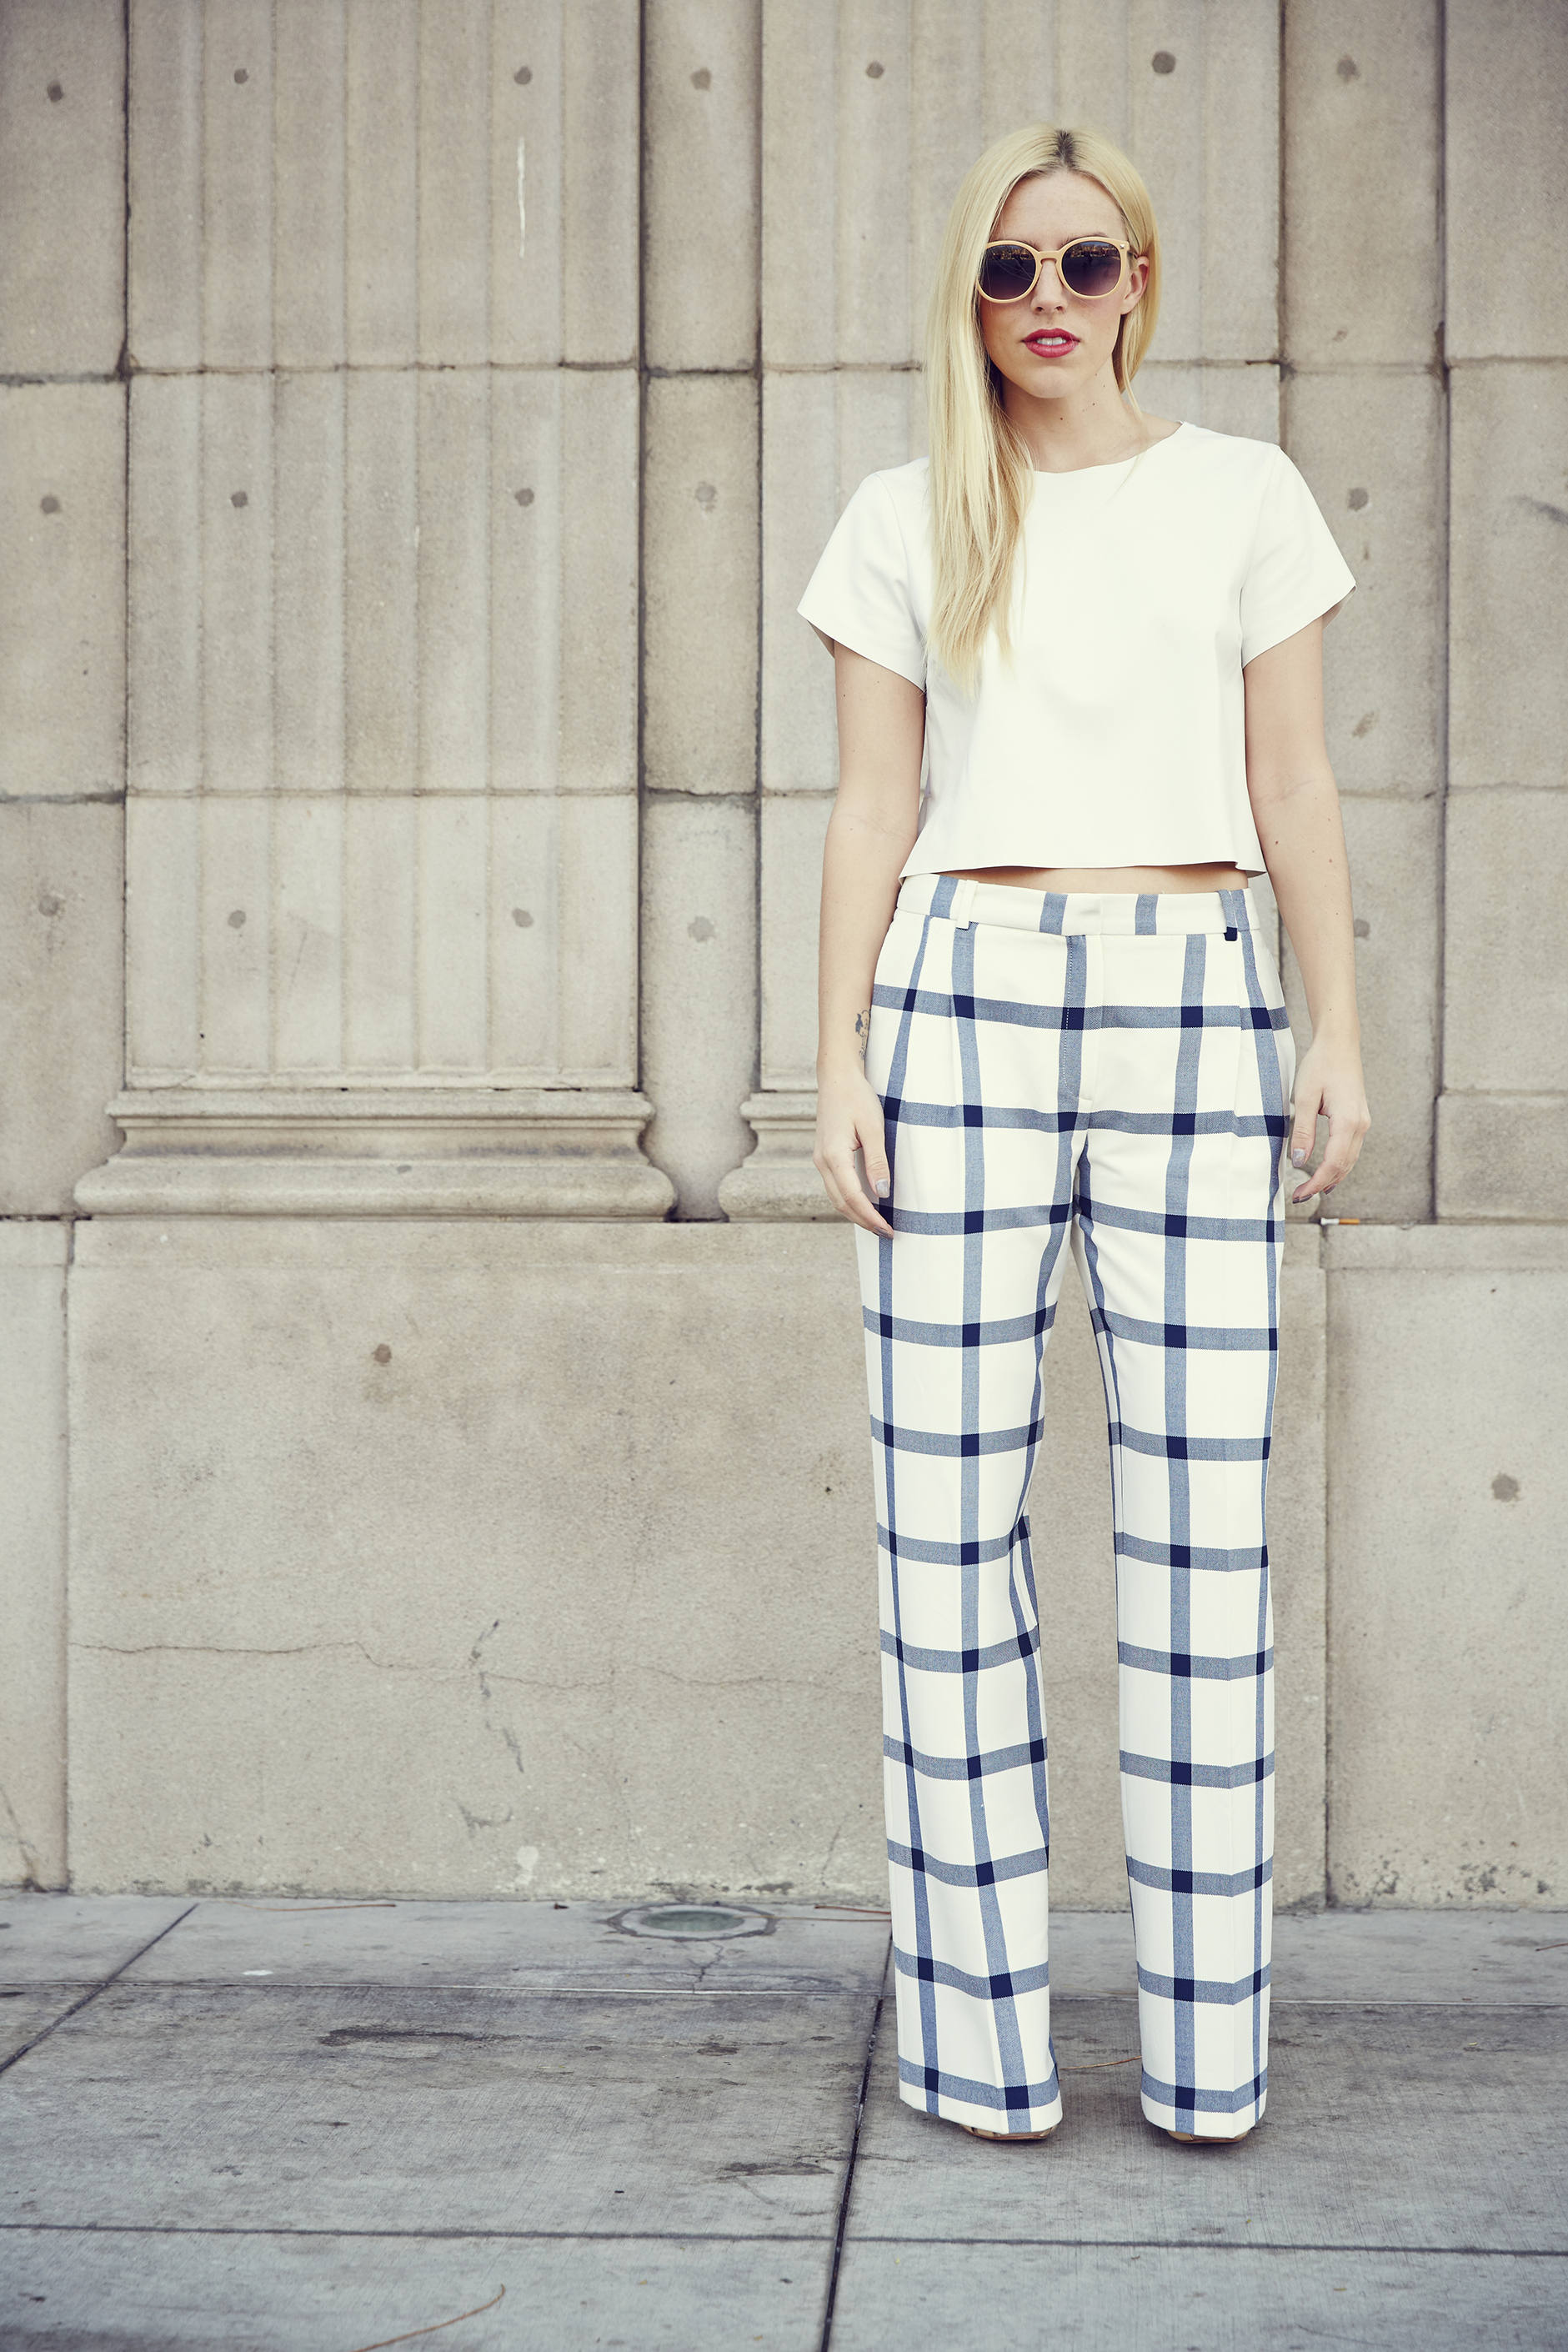 b04861c36b0bc Trends For Spring In LA | All White + Checked Wide Leg Trousers ...